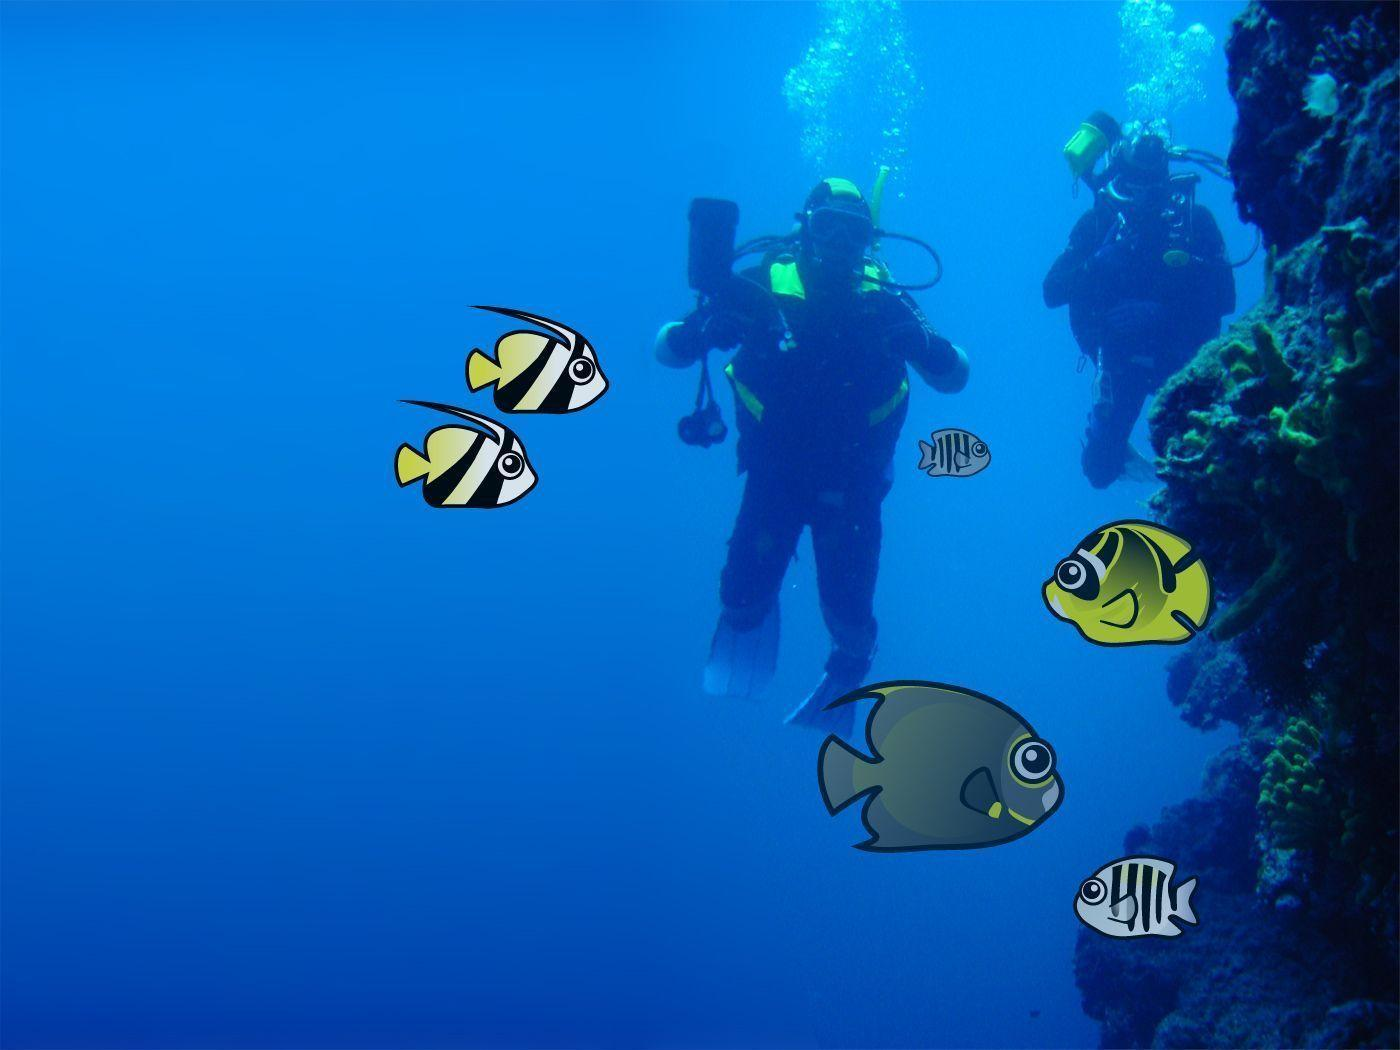 Free Scuba Diving Wallpapers - Wallpaper Cave | 1400 x 1050 jpeg 89kB